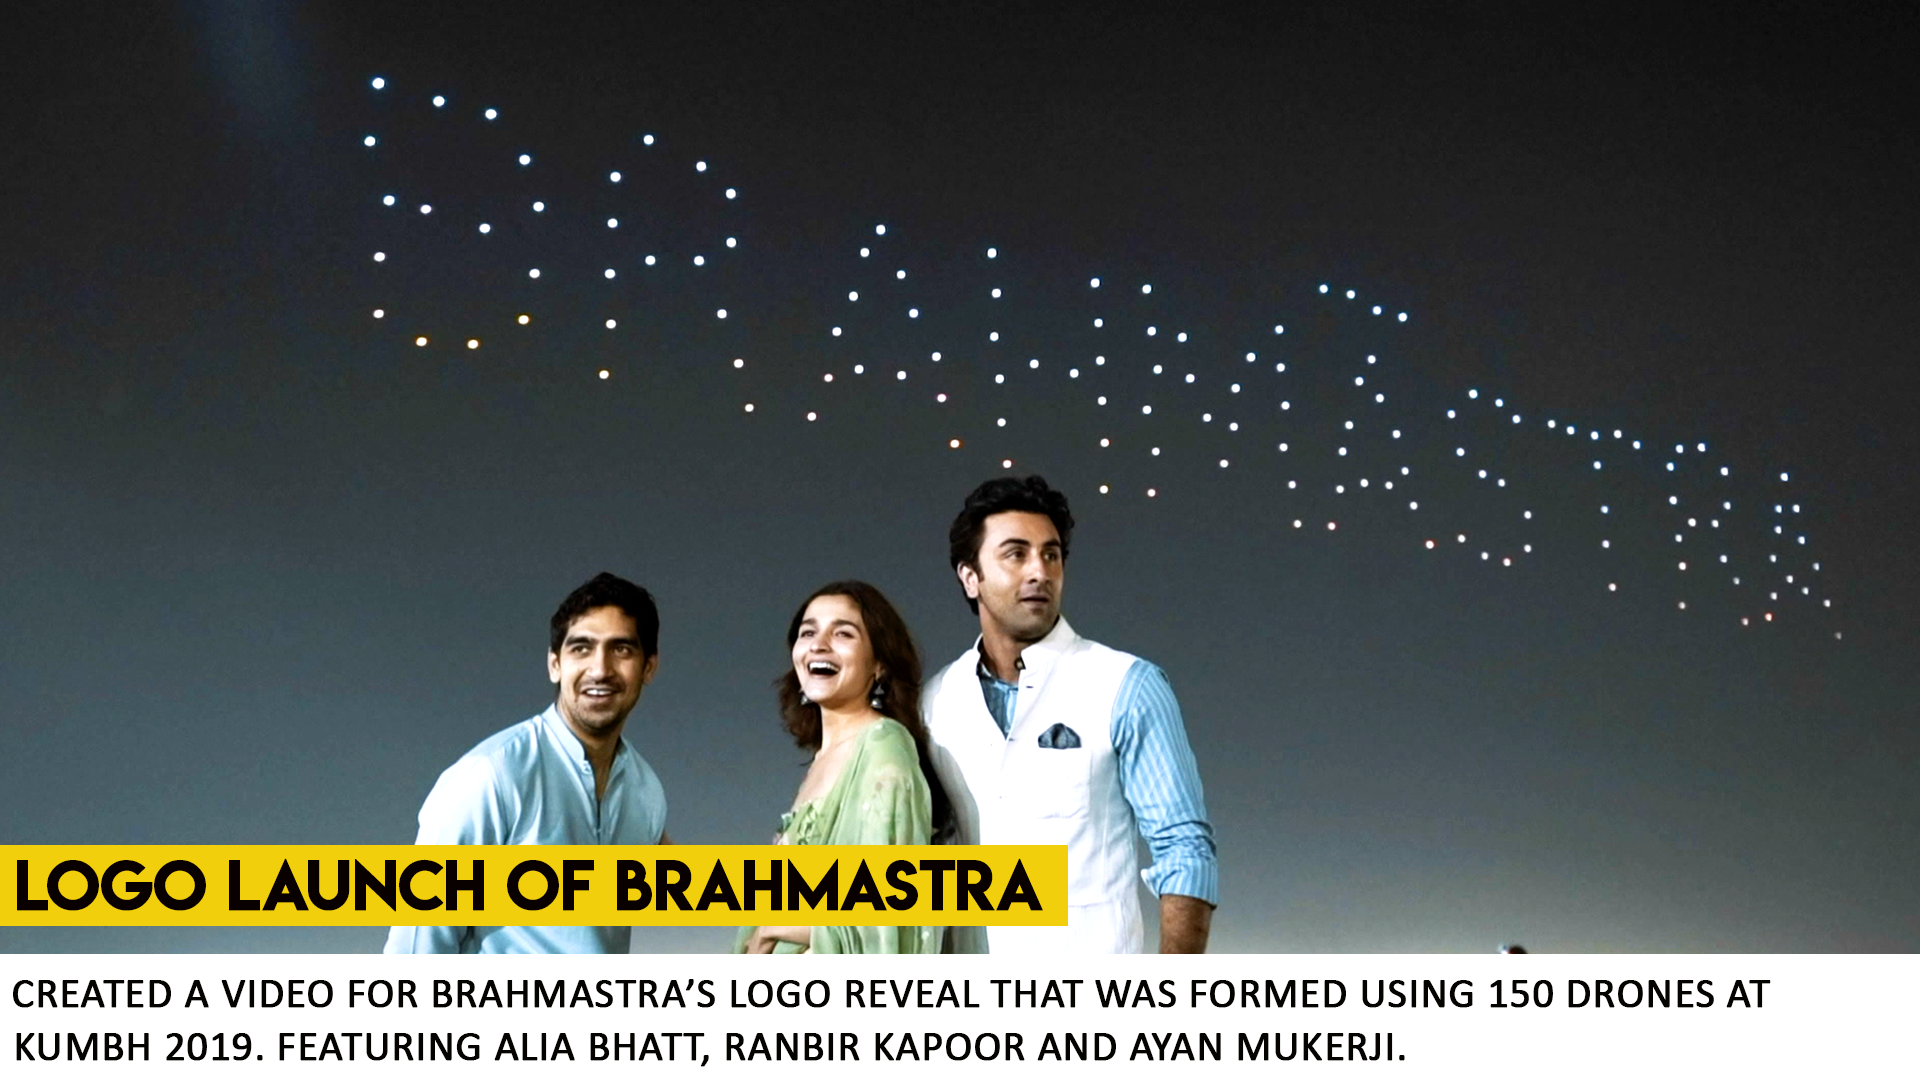 Brahmastra Logo Launch by What Works